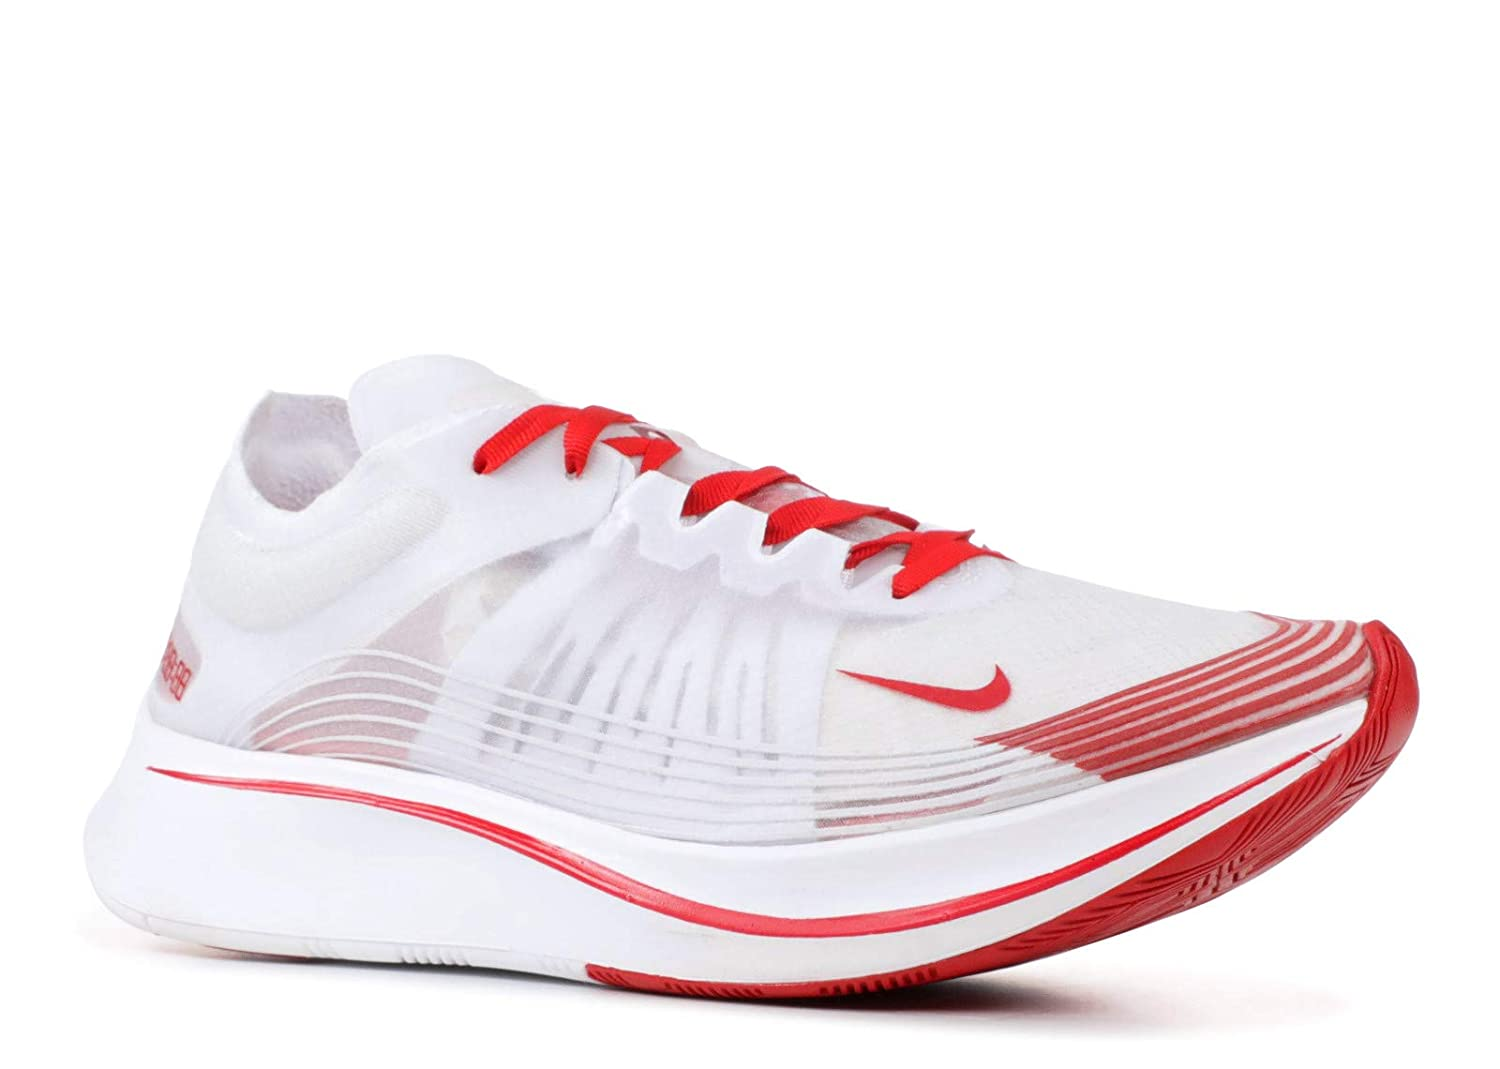 White, university red Nike Mens Zoom Fly SP Lightweight Trainer Running shoes